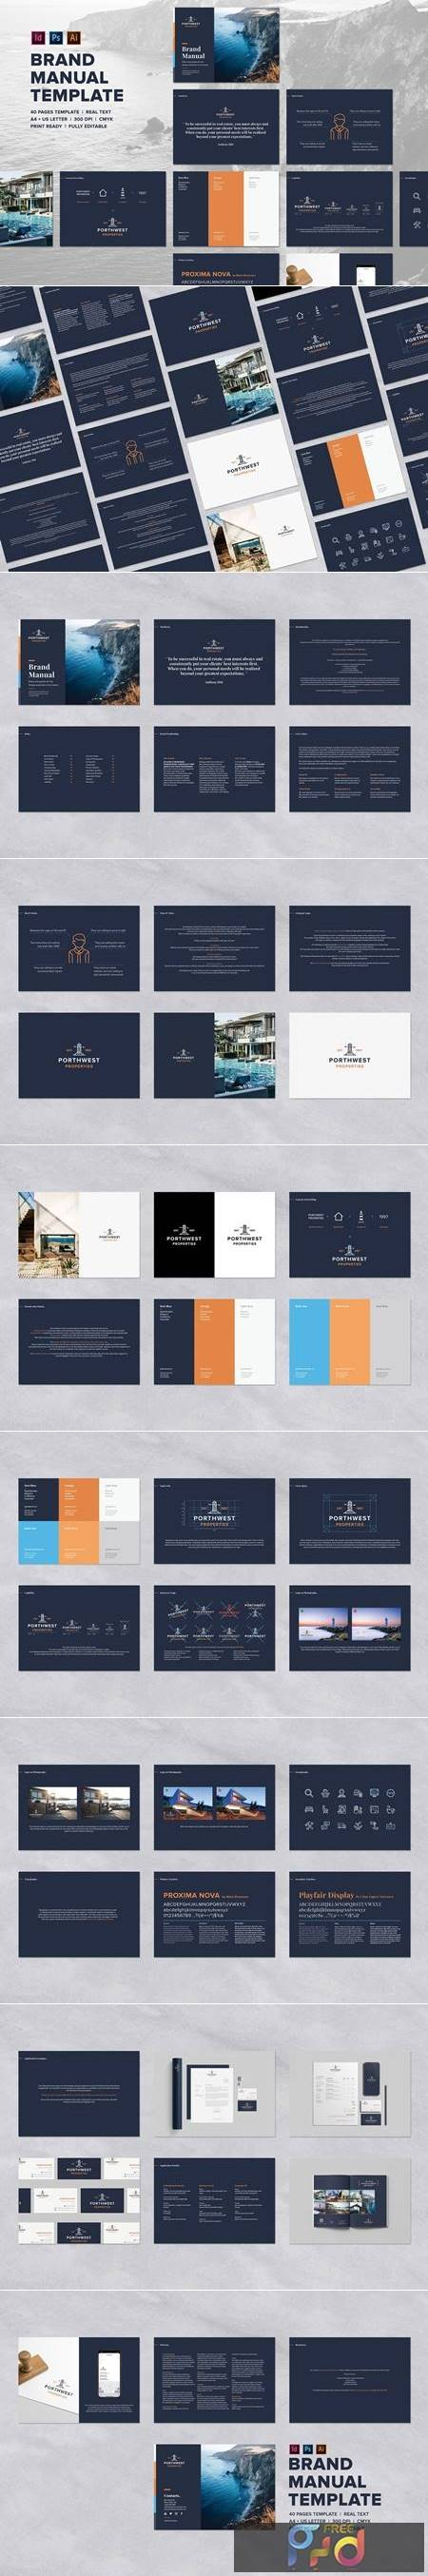 Logo Brand Guidelines Template 4893108 1